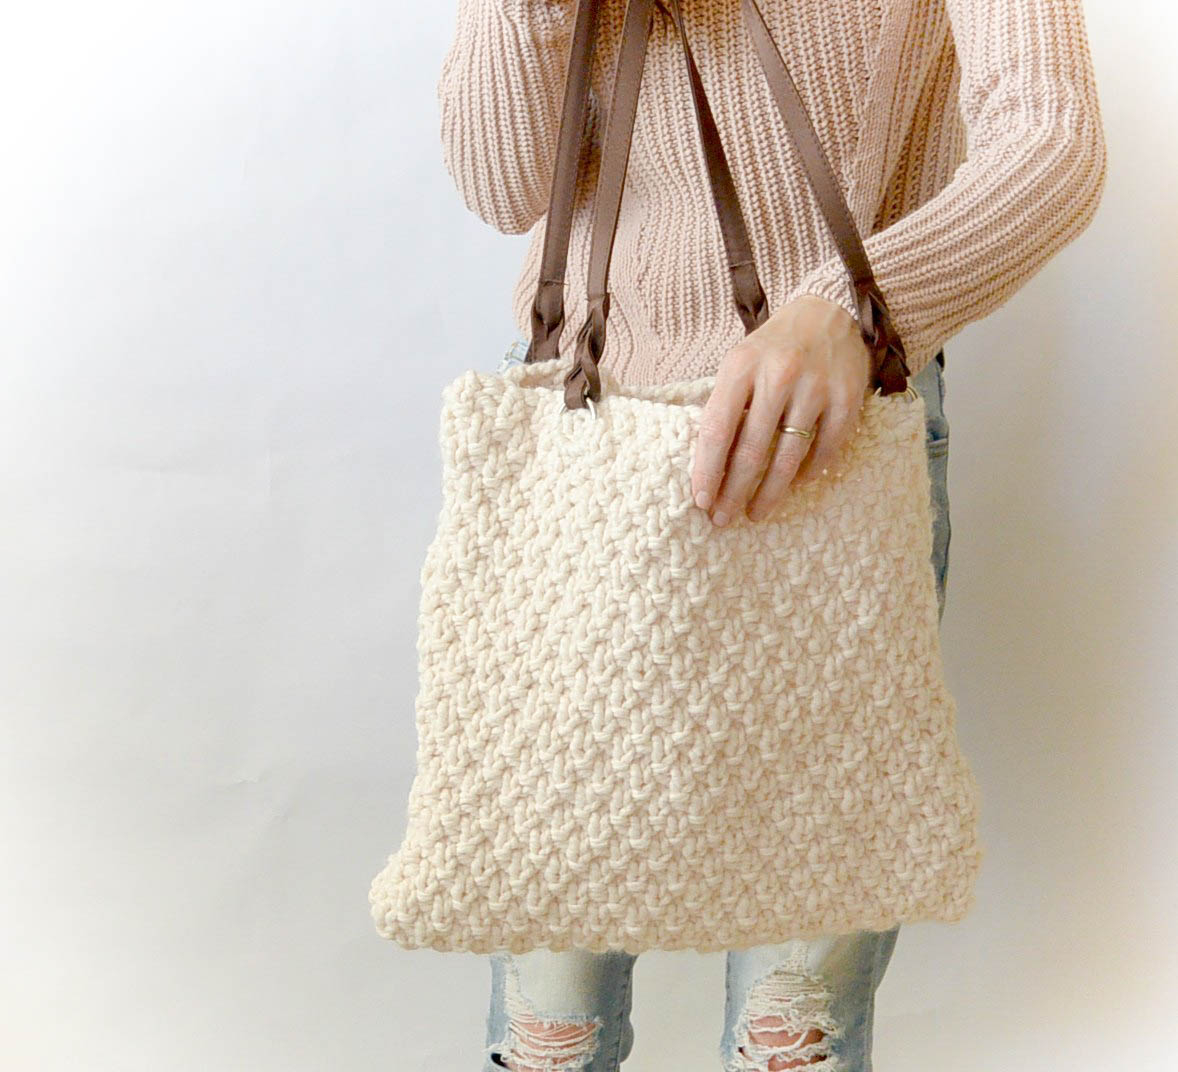 Knitted Bag Pattern Aspen Mountain Knit Bag Pattern Mama In A Stitch